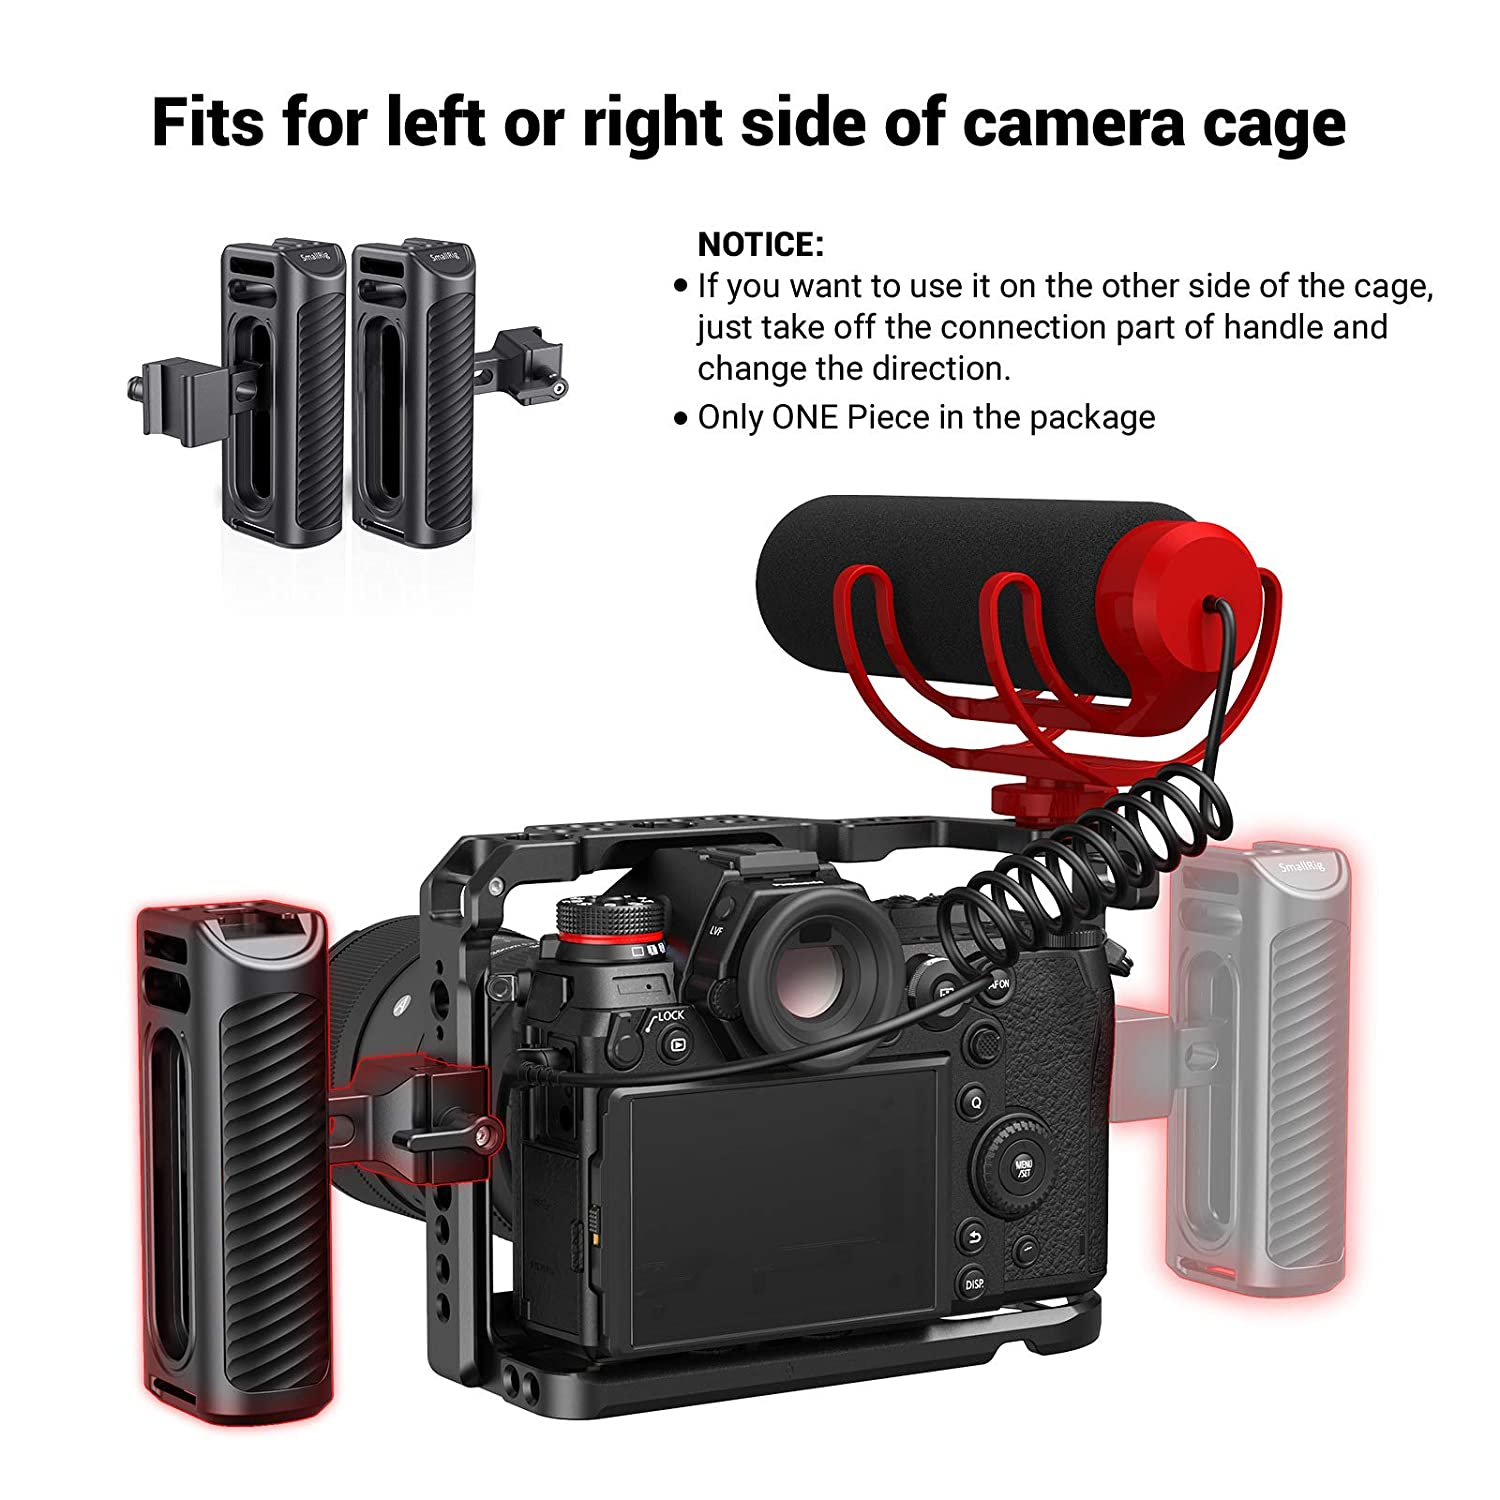 1//4 Threaded Holes HSS2425 SMALLRIG Universal Aluminum Side Handle Grip for DSLR Camera Cage with Cold Shoe Mount Built-in Wrench